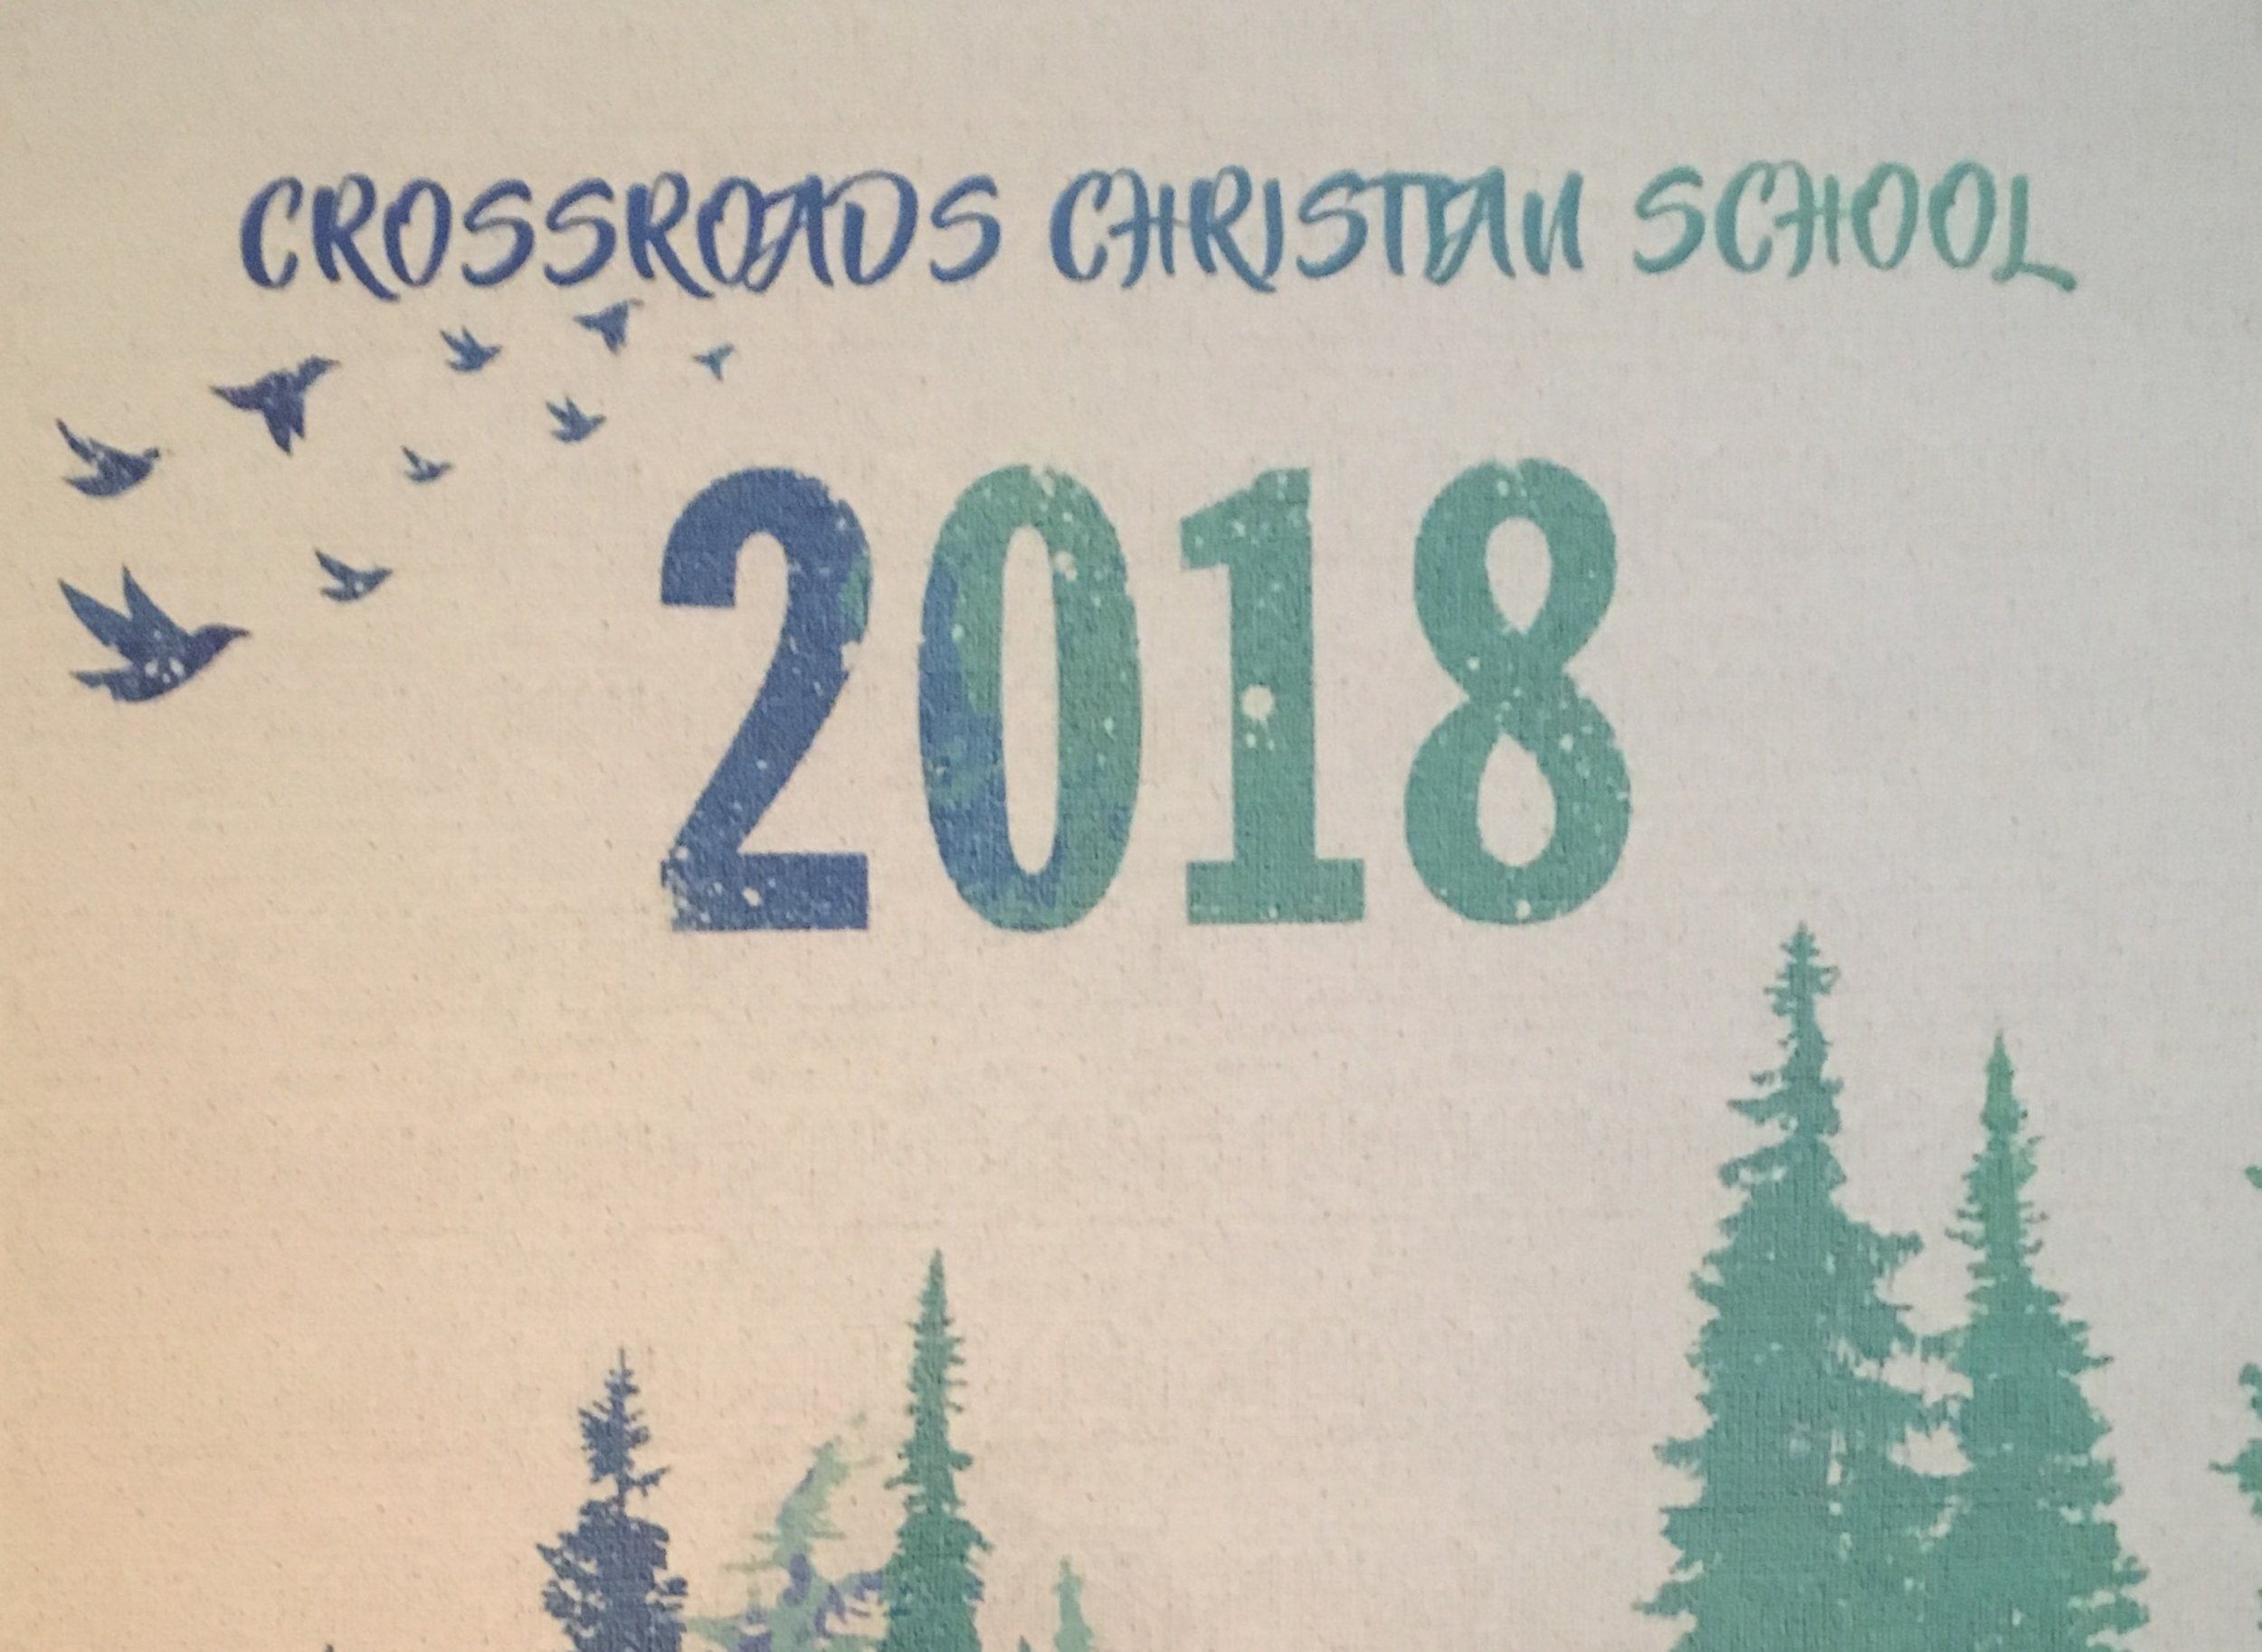 Order a Yearbook! - Yearbook 2018-2019. Don't miss out. Go ahead and order and pay for your yearbook for this year for only $36. There will be a table at each faculty meeting or you can come by the office to pre-order.